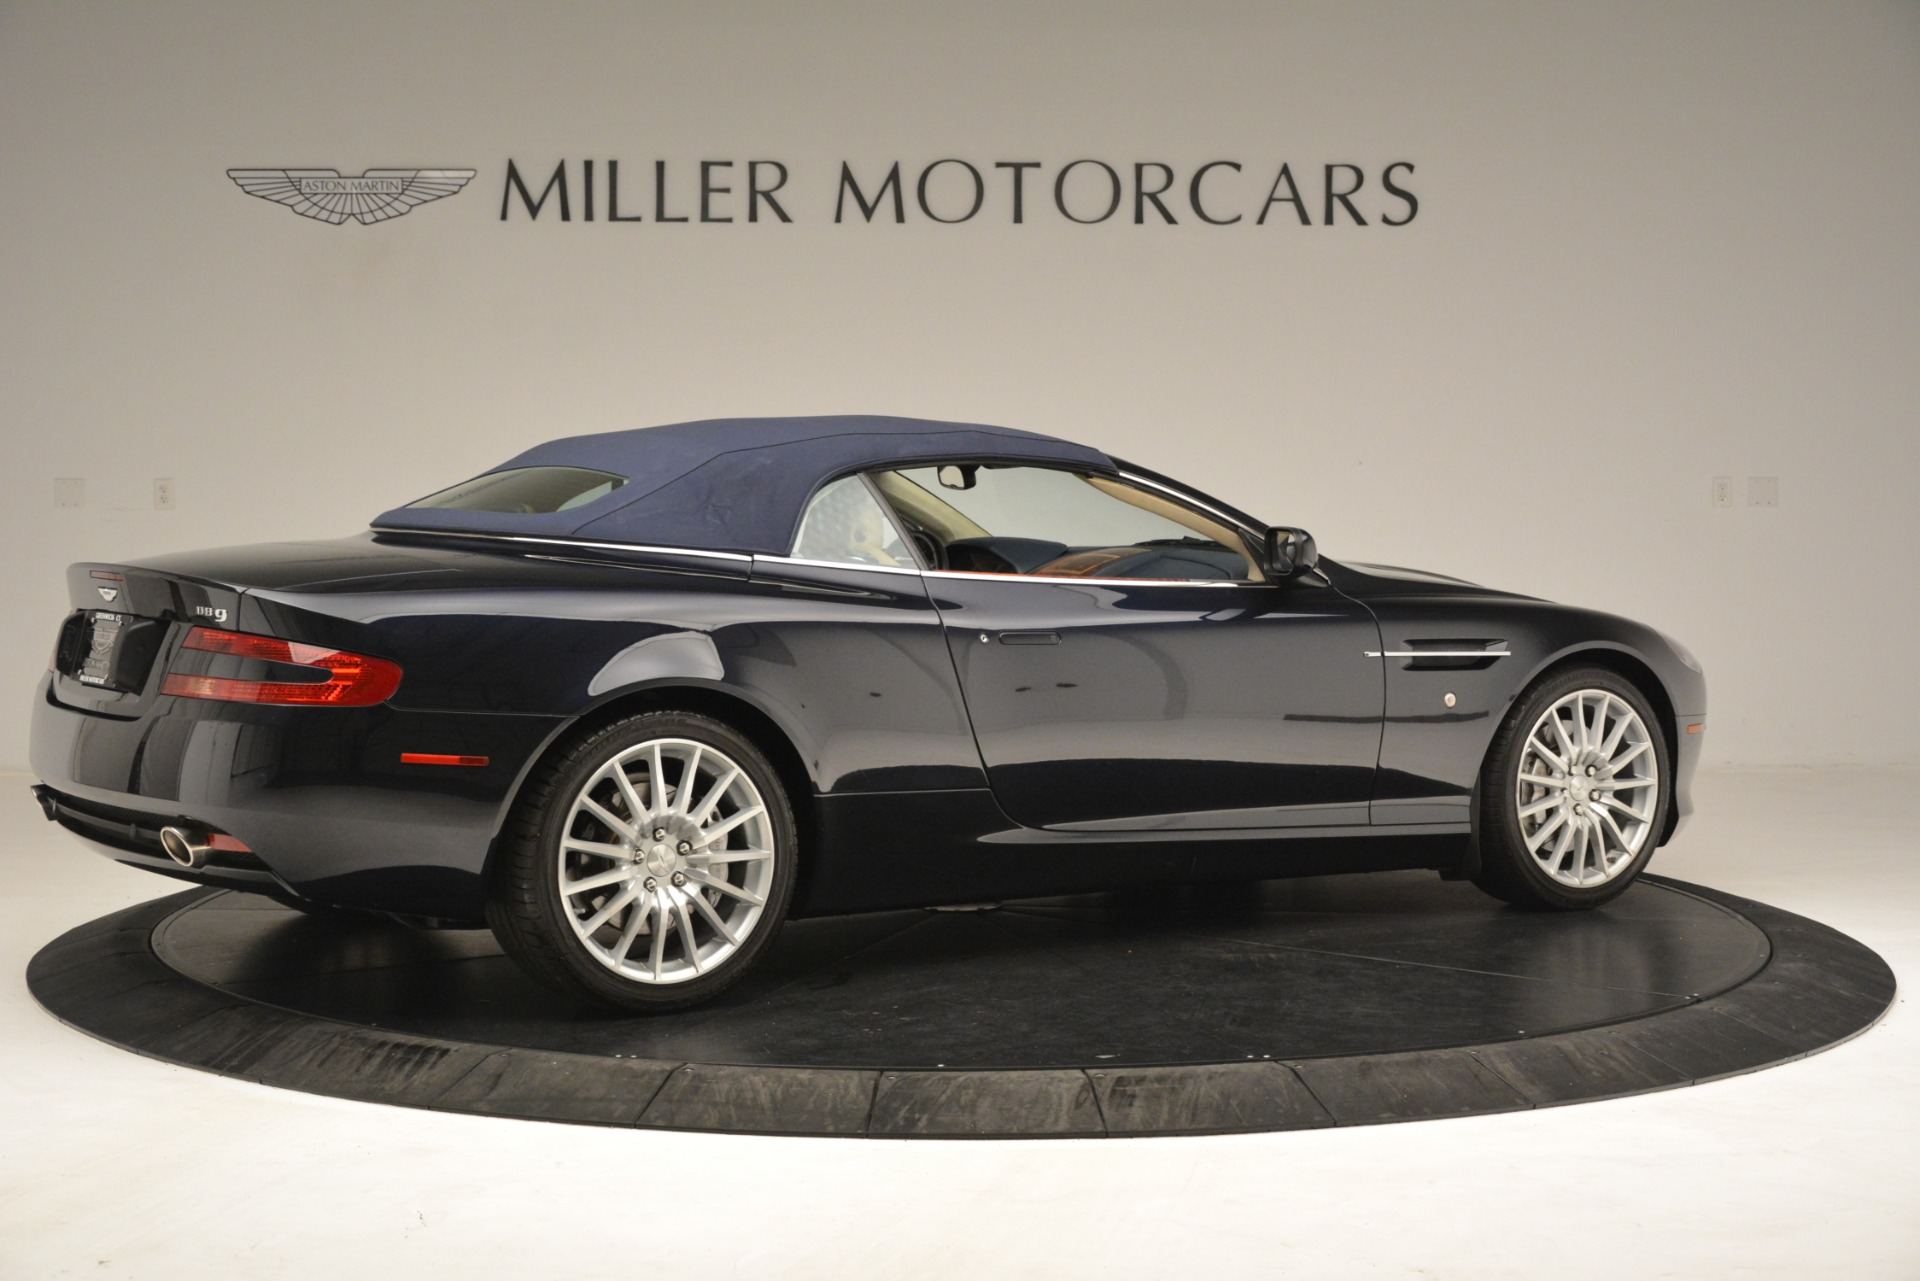 Used 2007 Aston Martin DB9 Convertible For Sale In Greenwich, CT 3291_p29